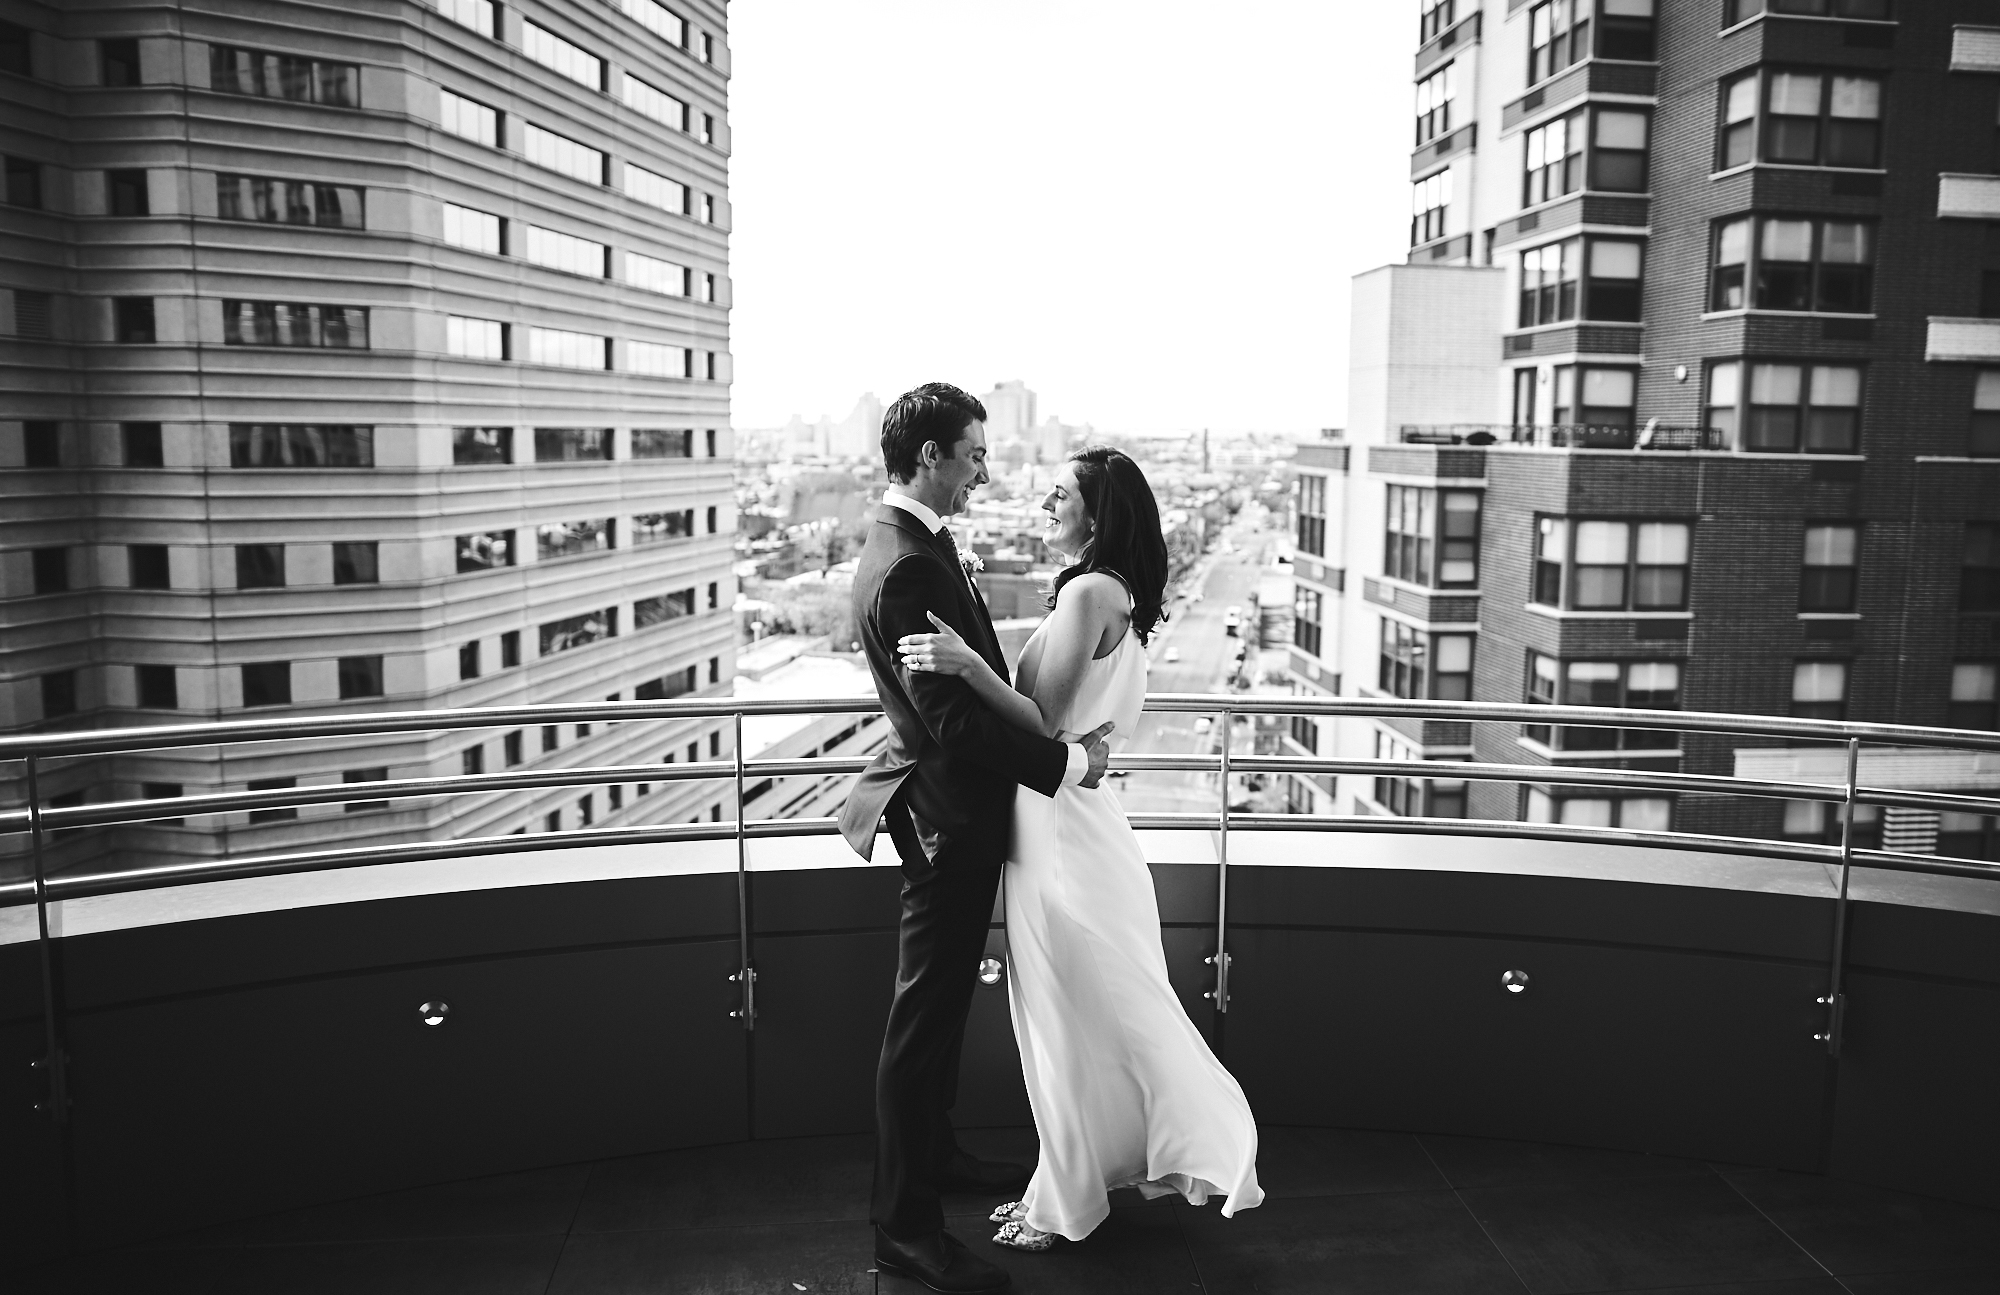 181116_JerseyCityCityHallFallWeddingPhotography_JerseyCityWeddingPhotographer_By_BriJohnsonWeddings_0042.jpg